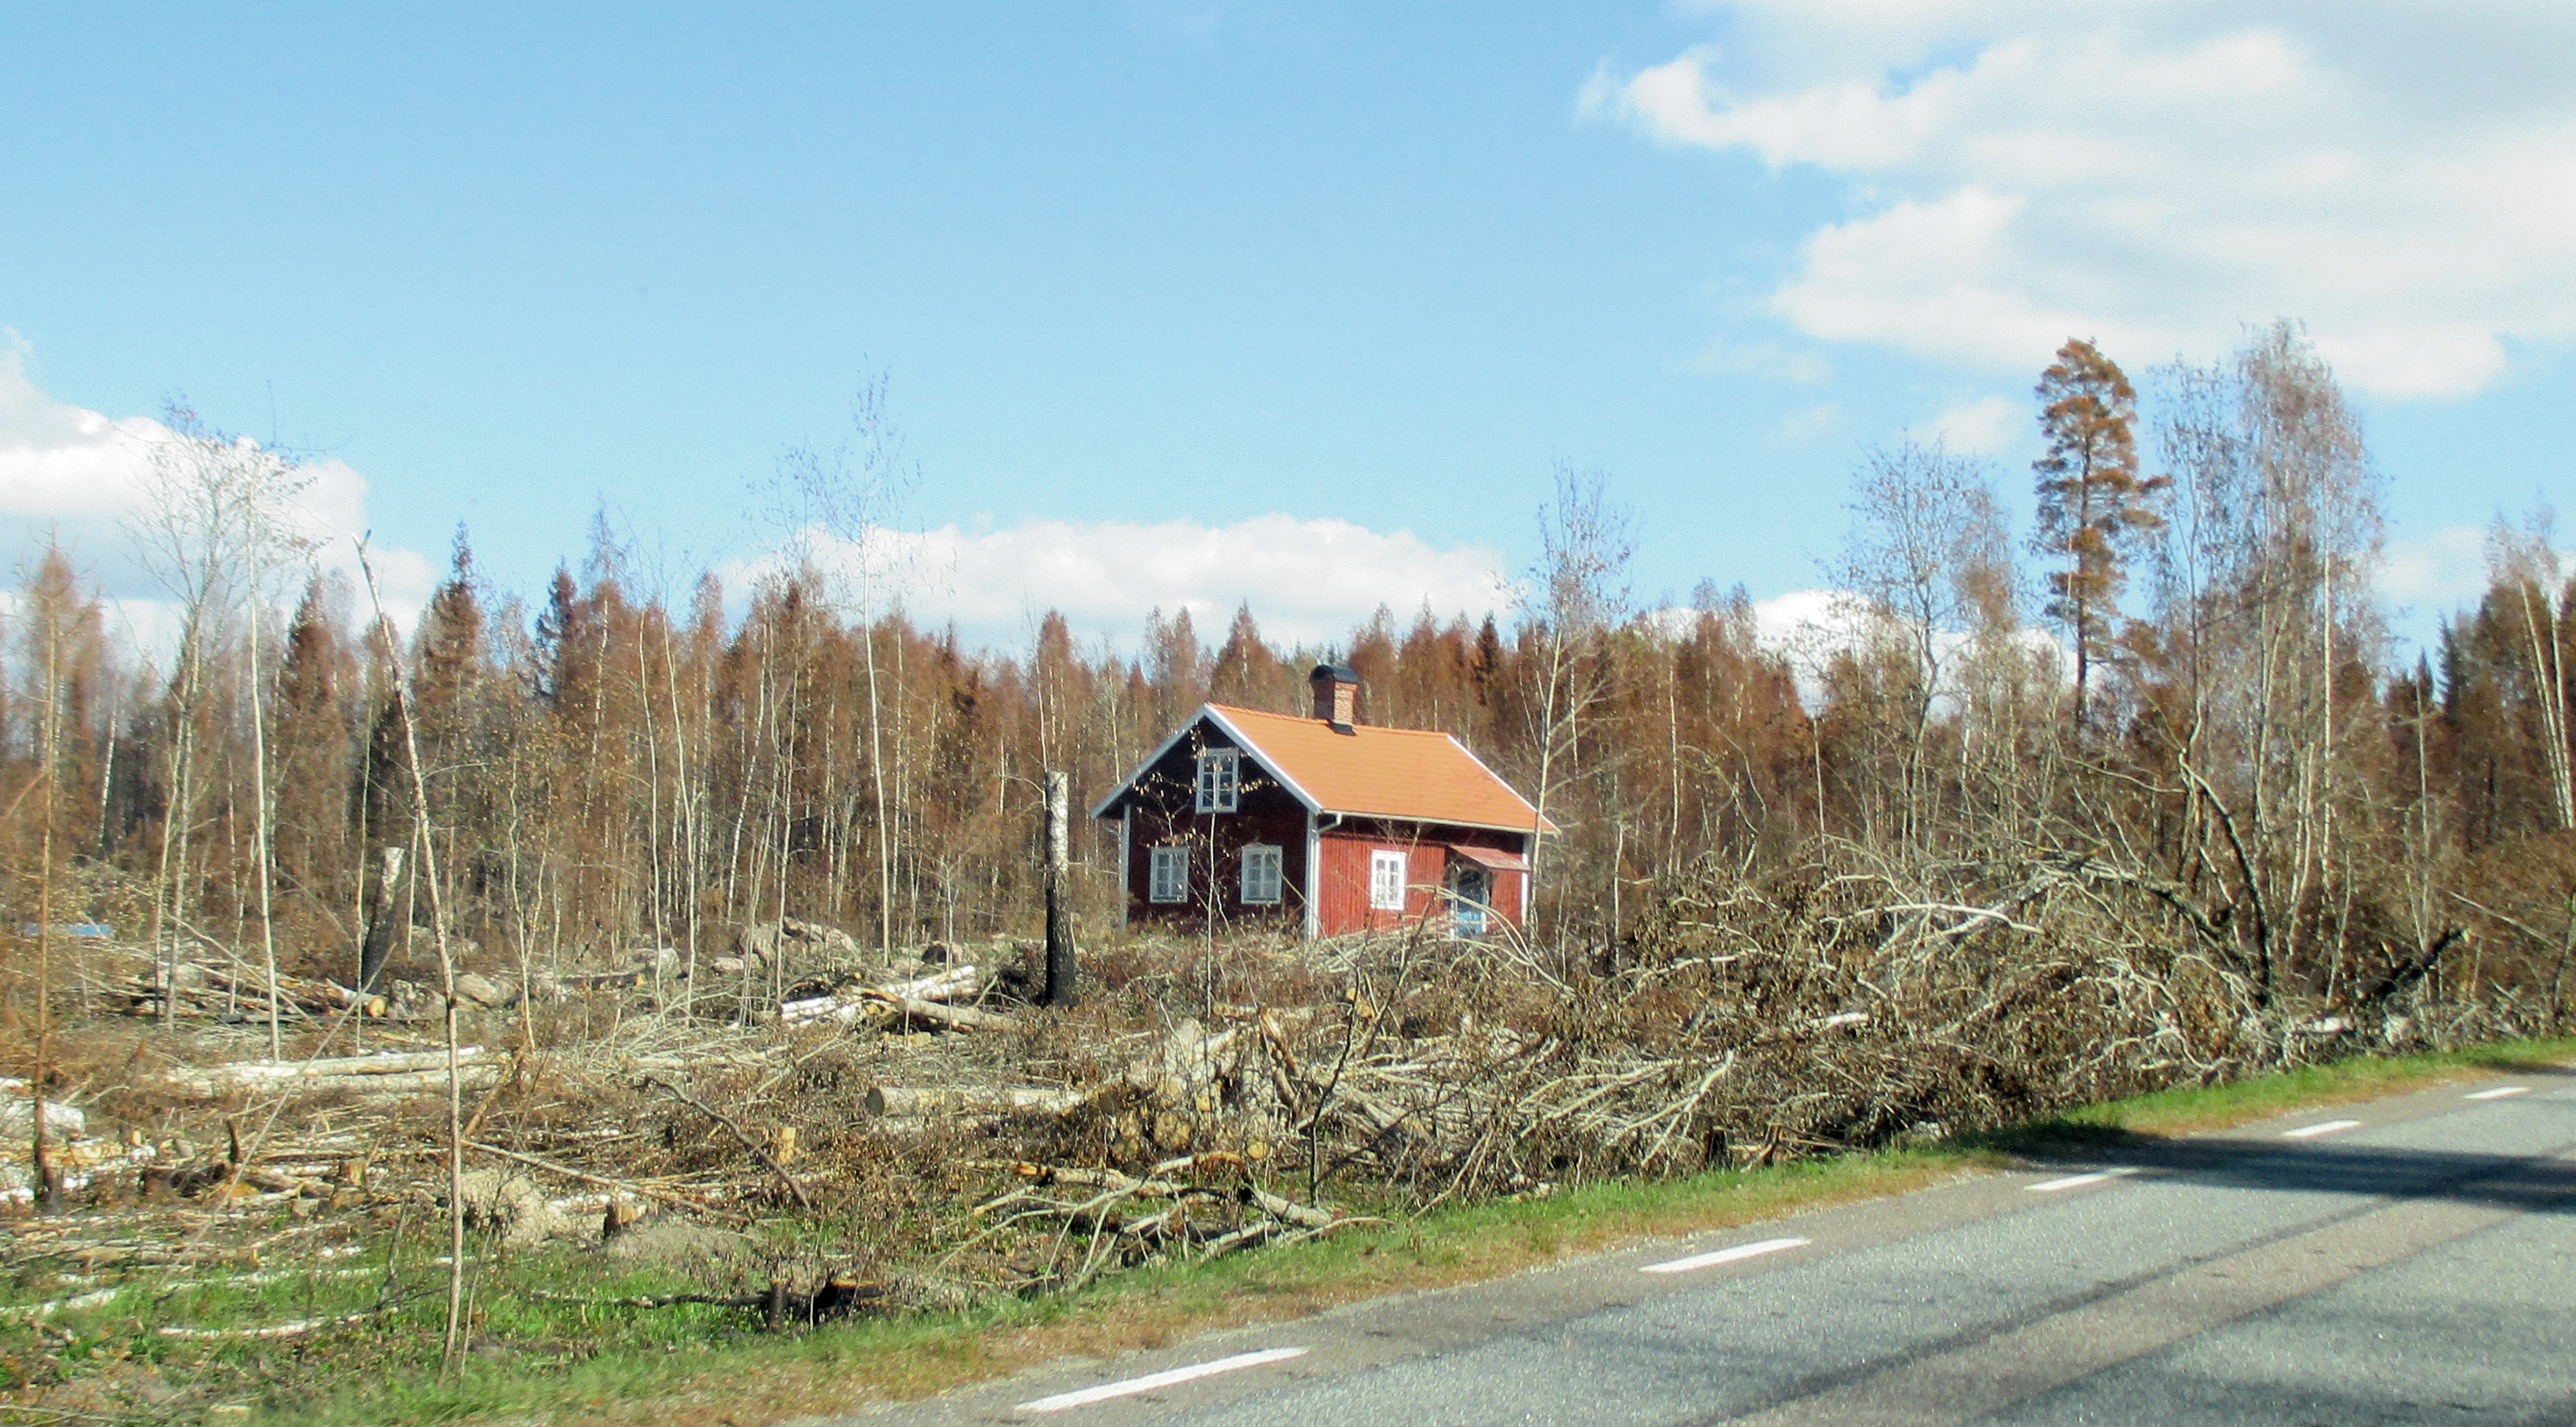 A Swedish cottage that managed to escape the Västmanland forest fire of 2014. Photo: Wikipedia